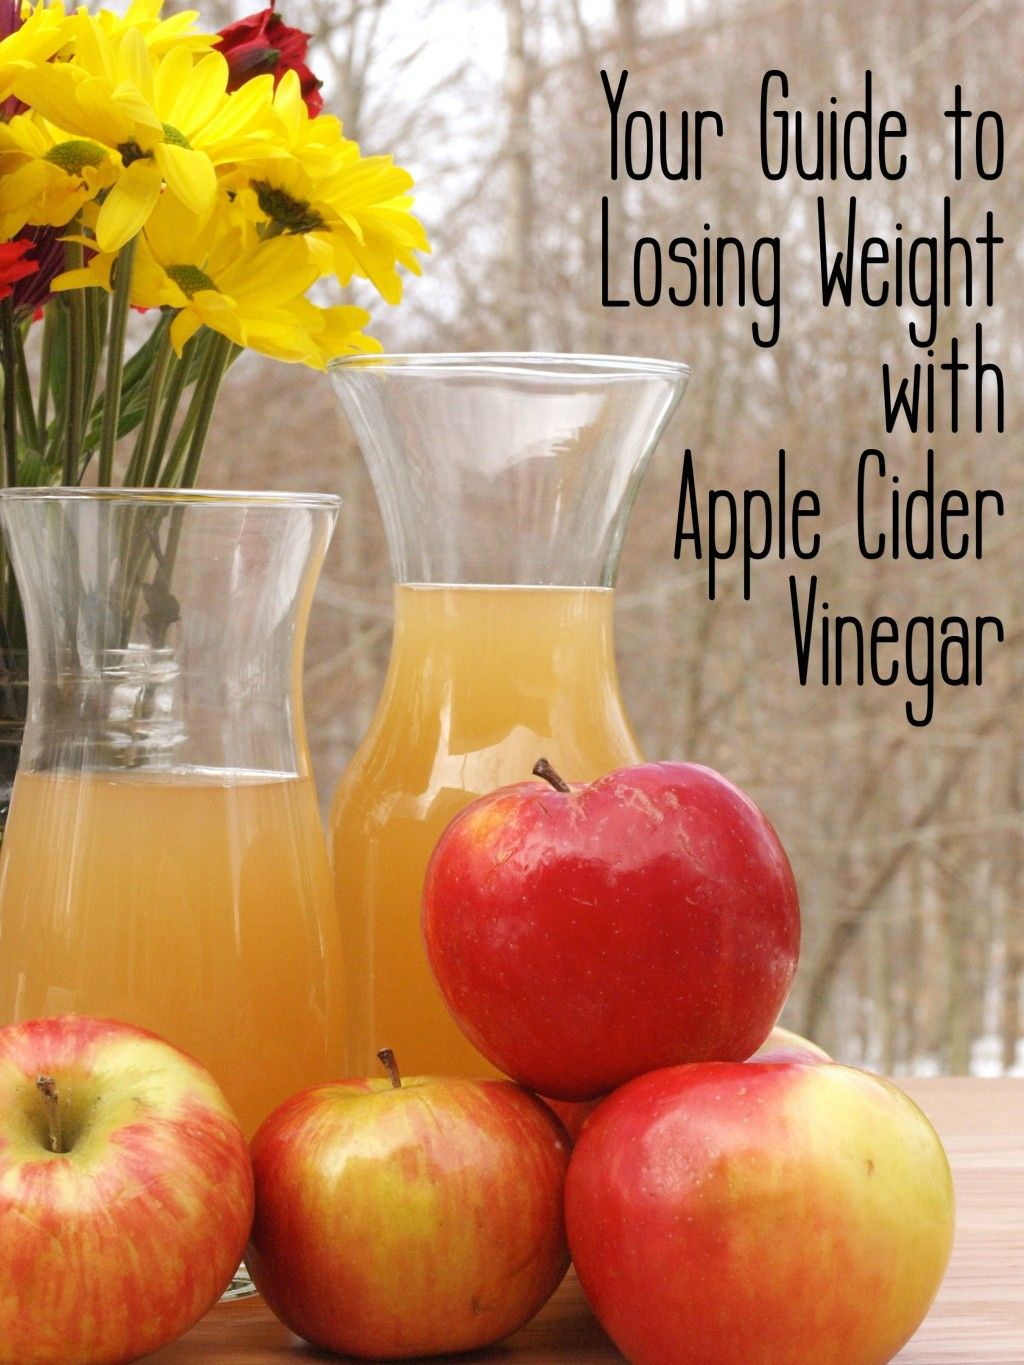 The Pros and Cons of Apple Cider Vinegar for Weight Loss The Pros and Cons of Apple Cider Vinegar for Weight Loss new pics